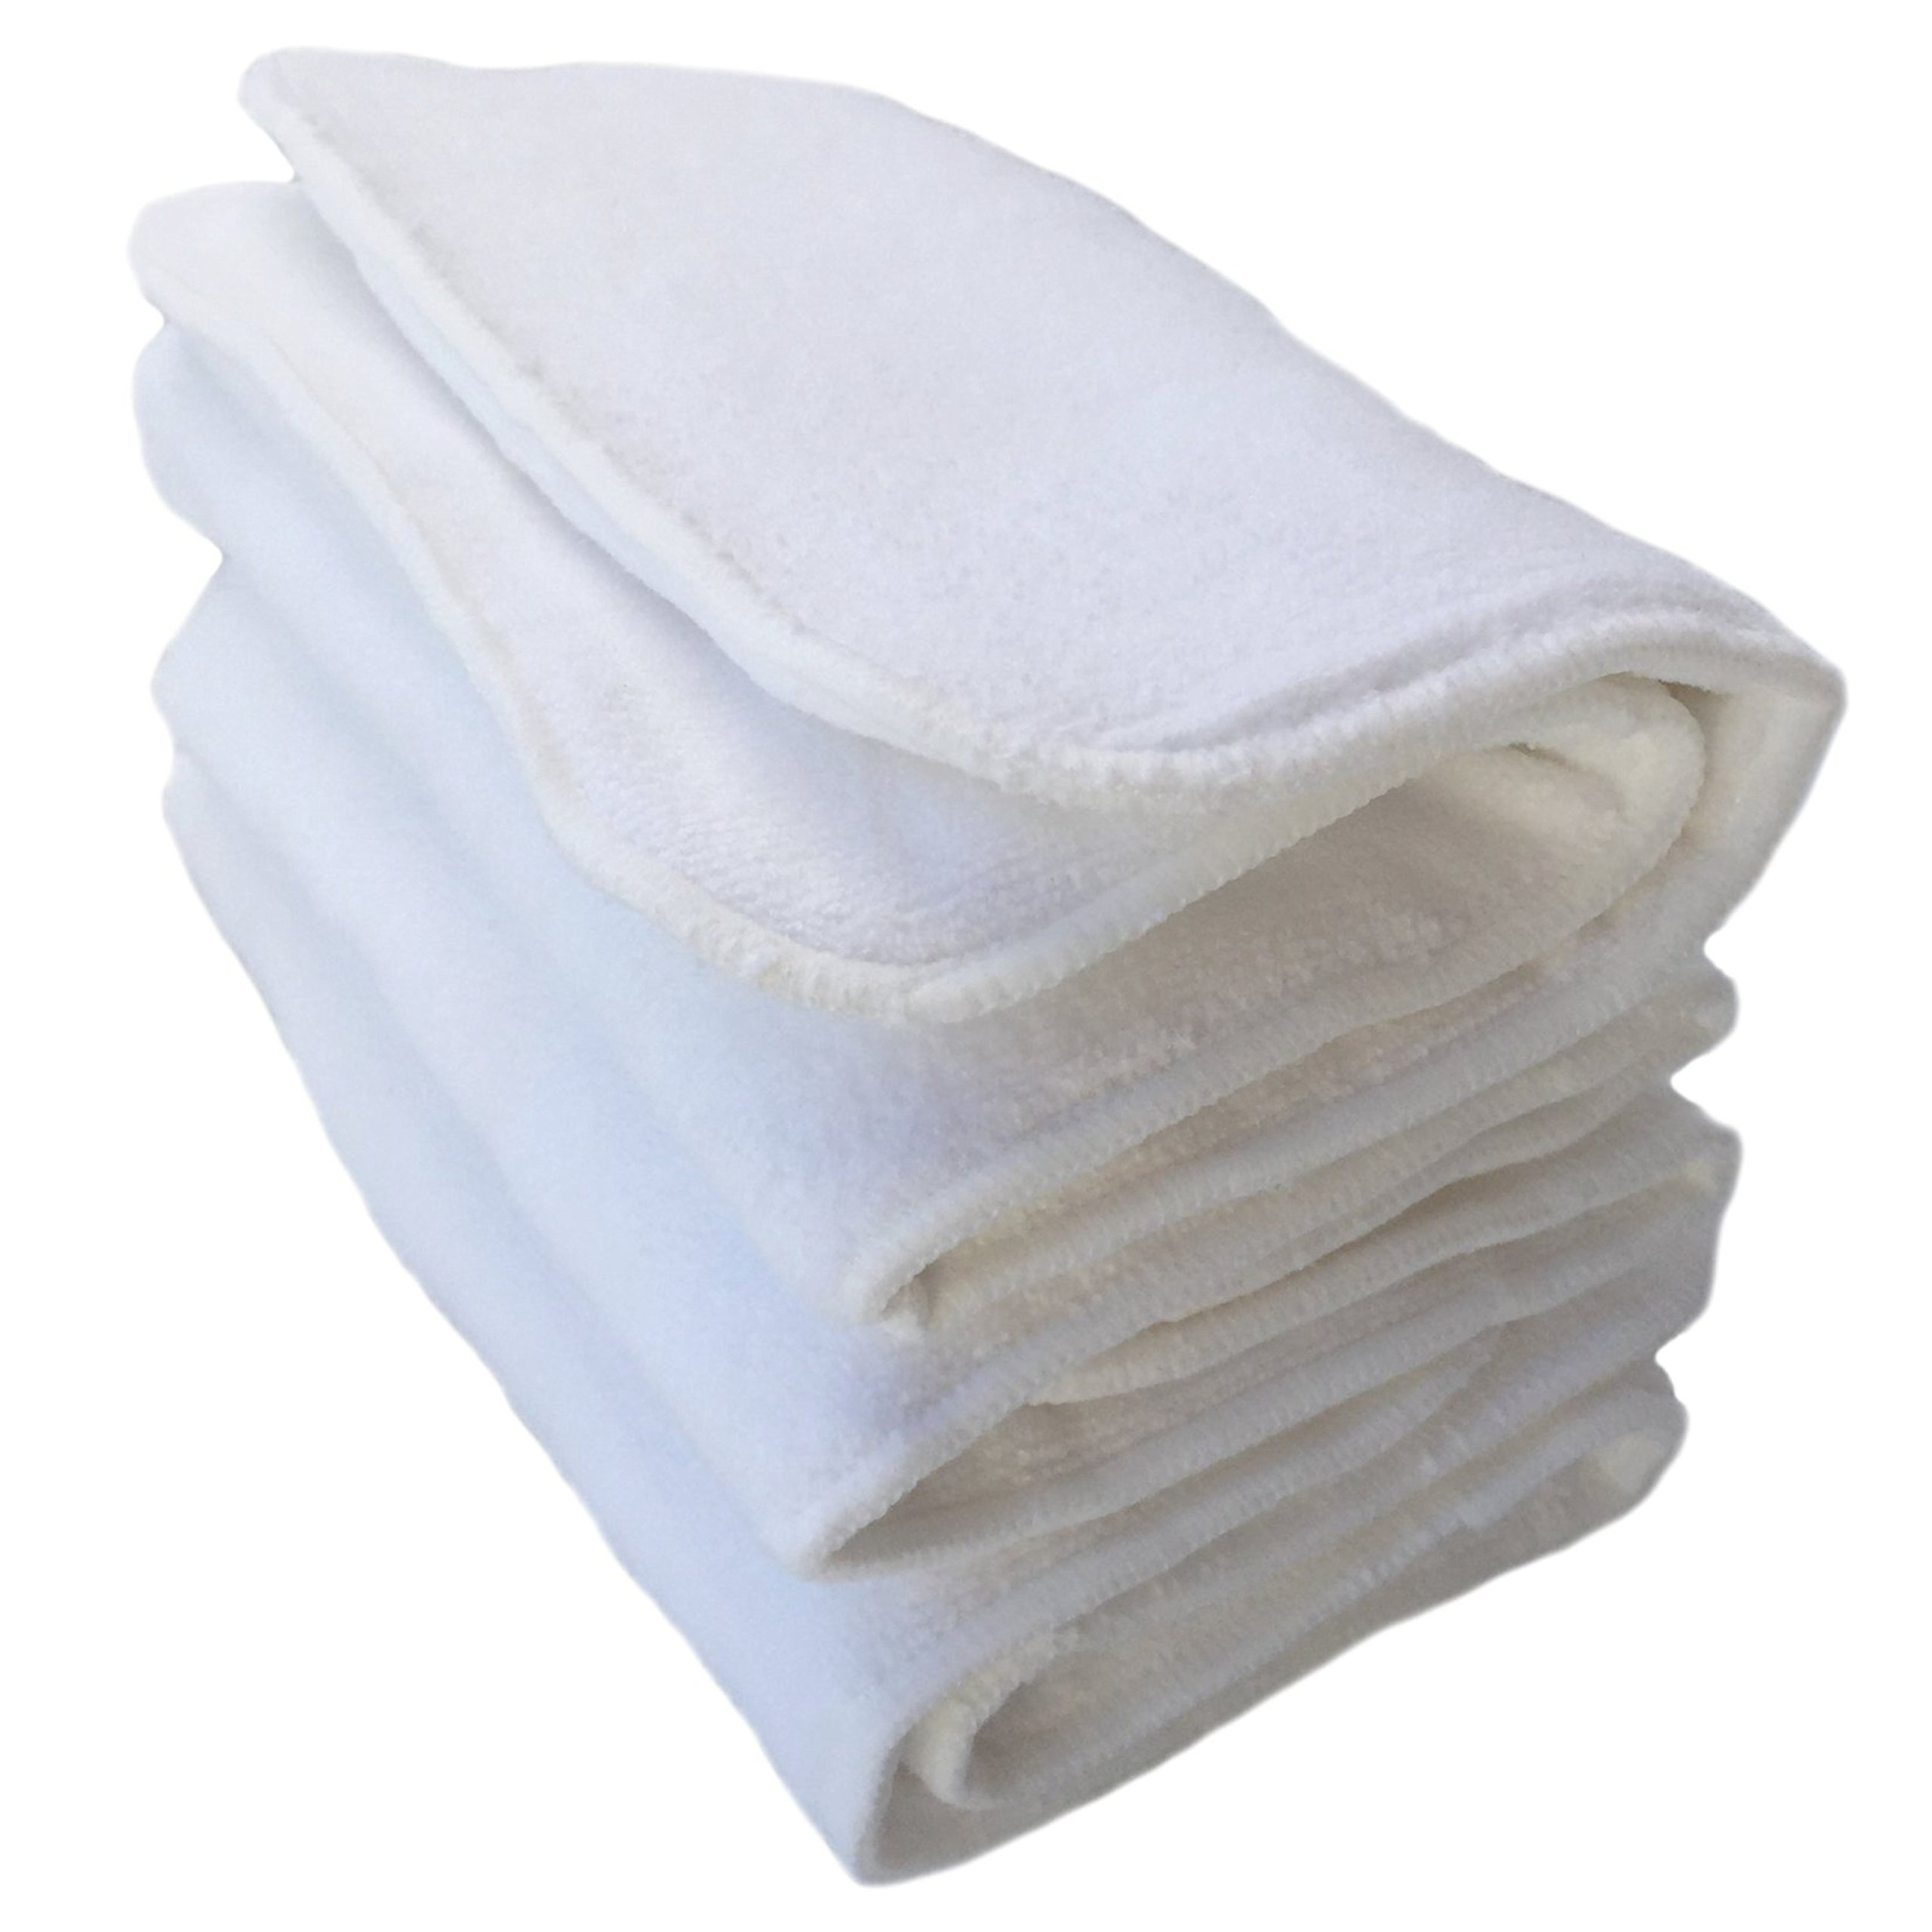 Happy Endings Teen/Adult Inserts for Cloth Diapers Incontinence ((3 Pack) 4 Layer Microfiber Inserts)) by Happy Endings